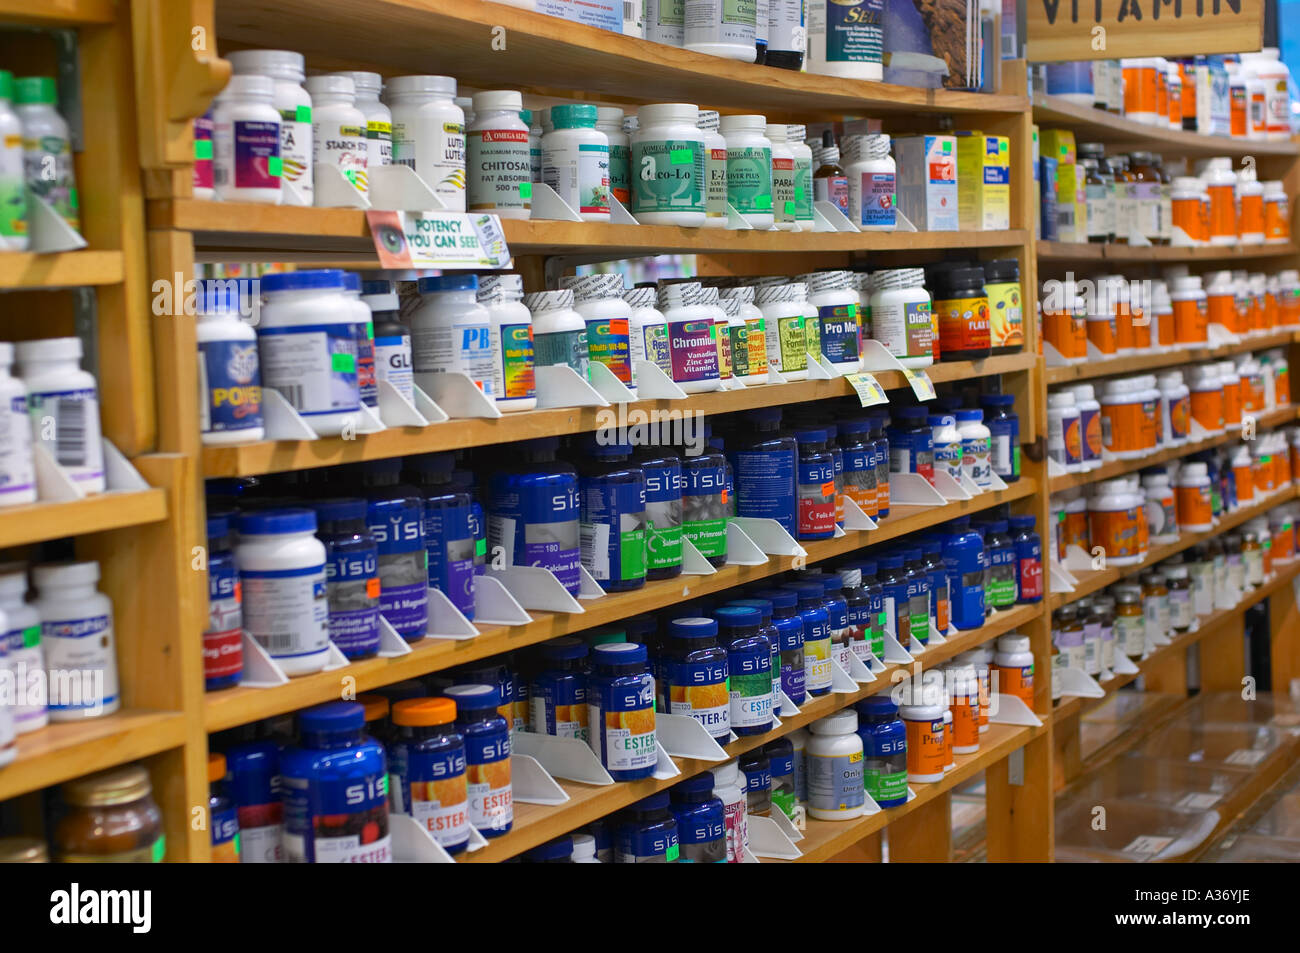 Health food and supplements shop. Vitamins and supplements lined up on store shelves. Stock Photo